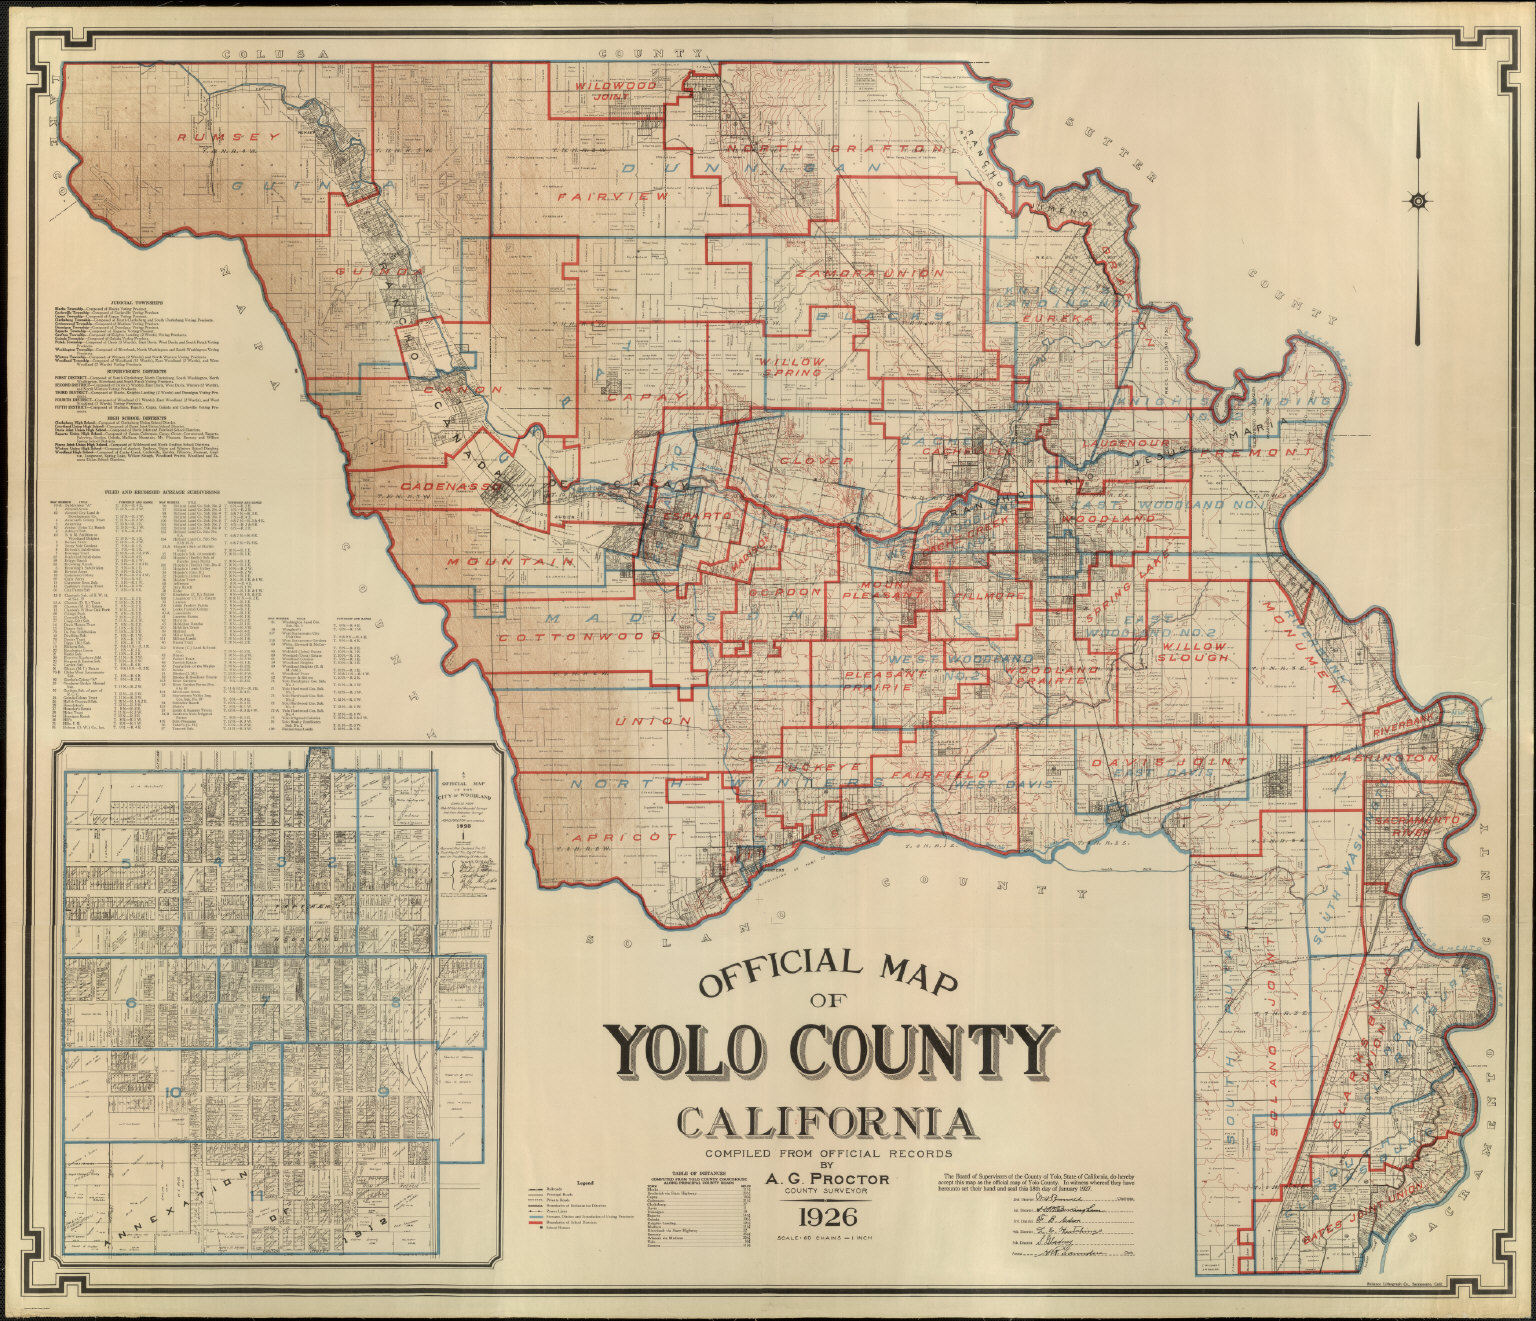 yolo county Follow the sacramento bee newspaper for the latest headlines on northern california news find daily local breaking news, opinion columns, videos and community events.